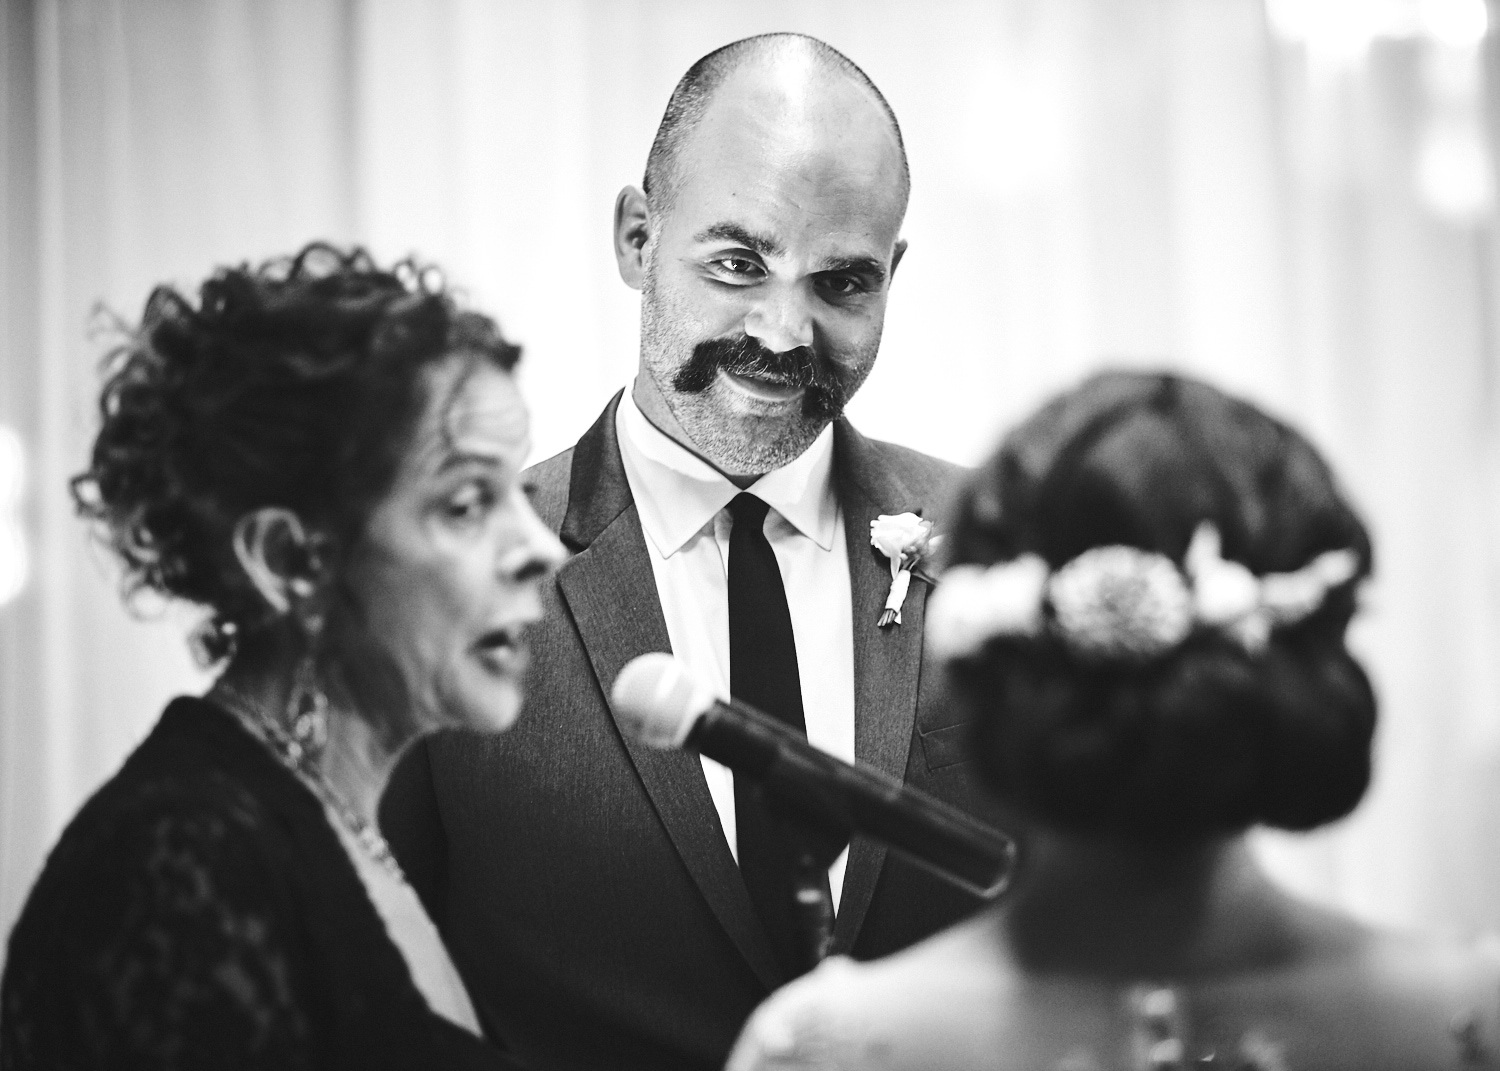 161022_A&B_26BridgeStWedding_By_BriJohnsonWeddings_0040.jpg